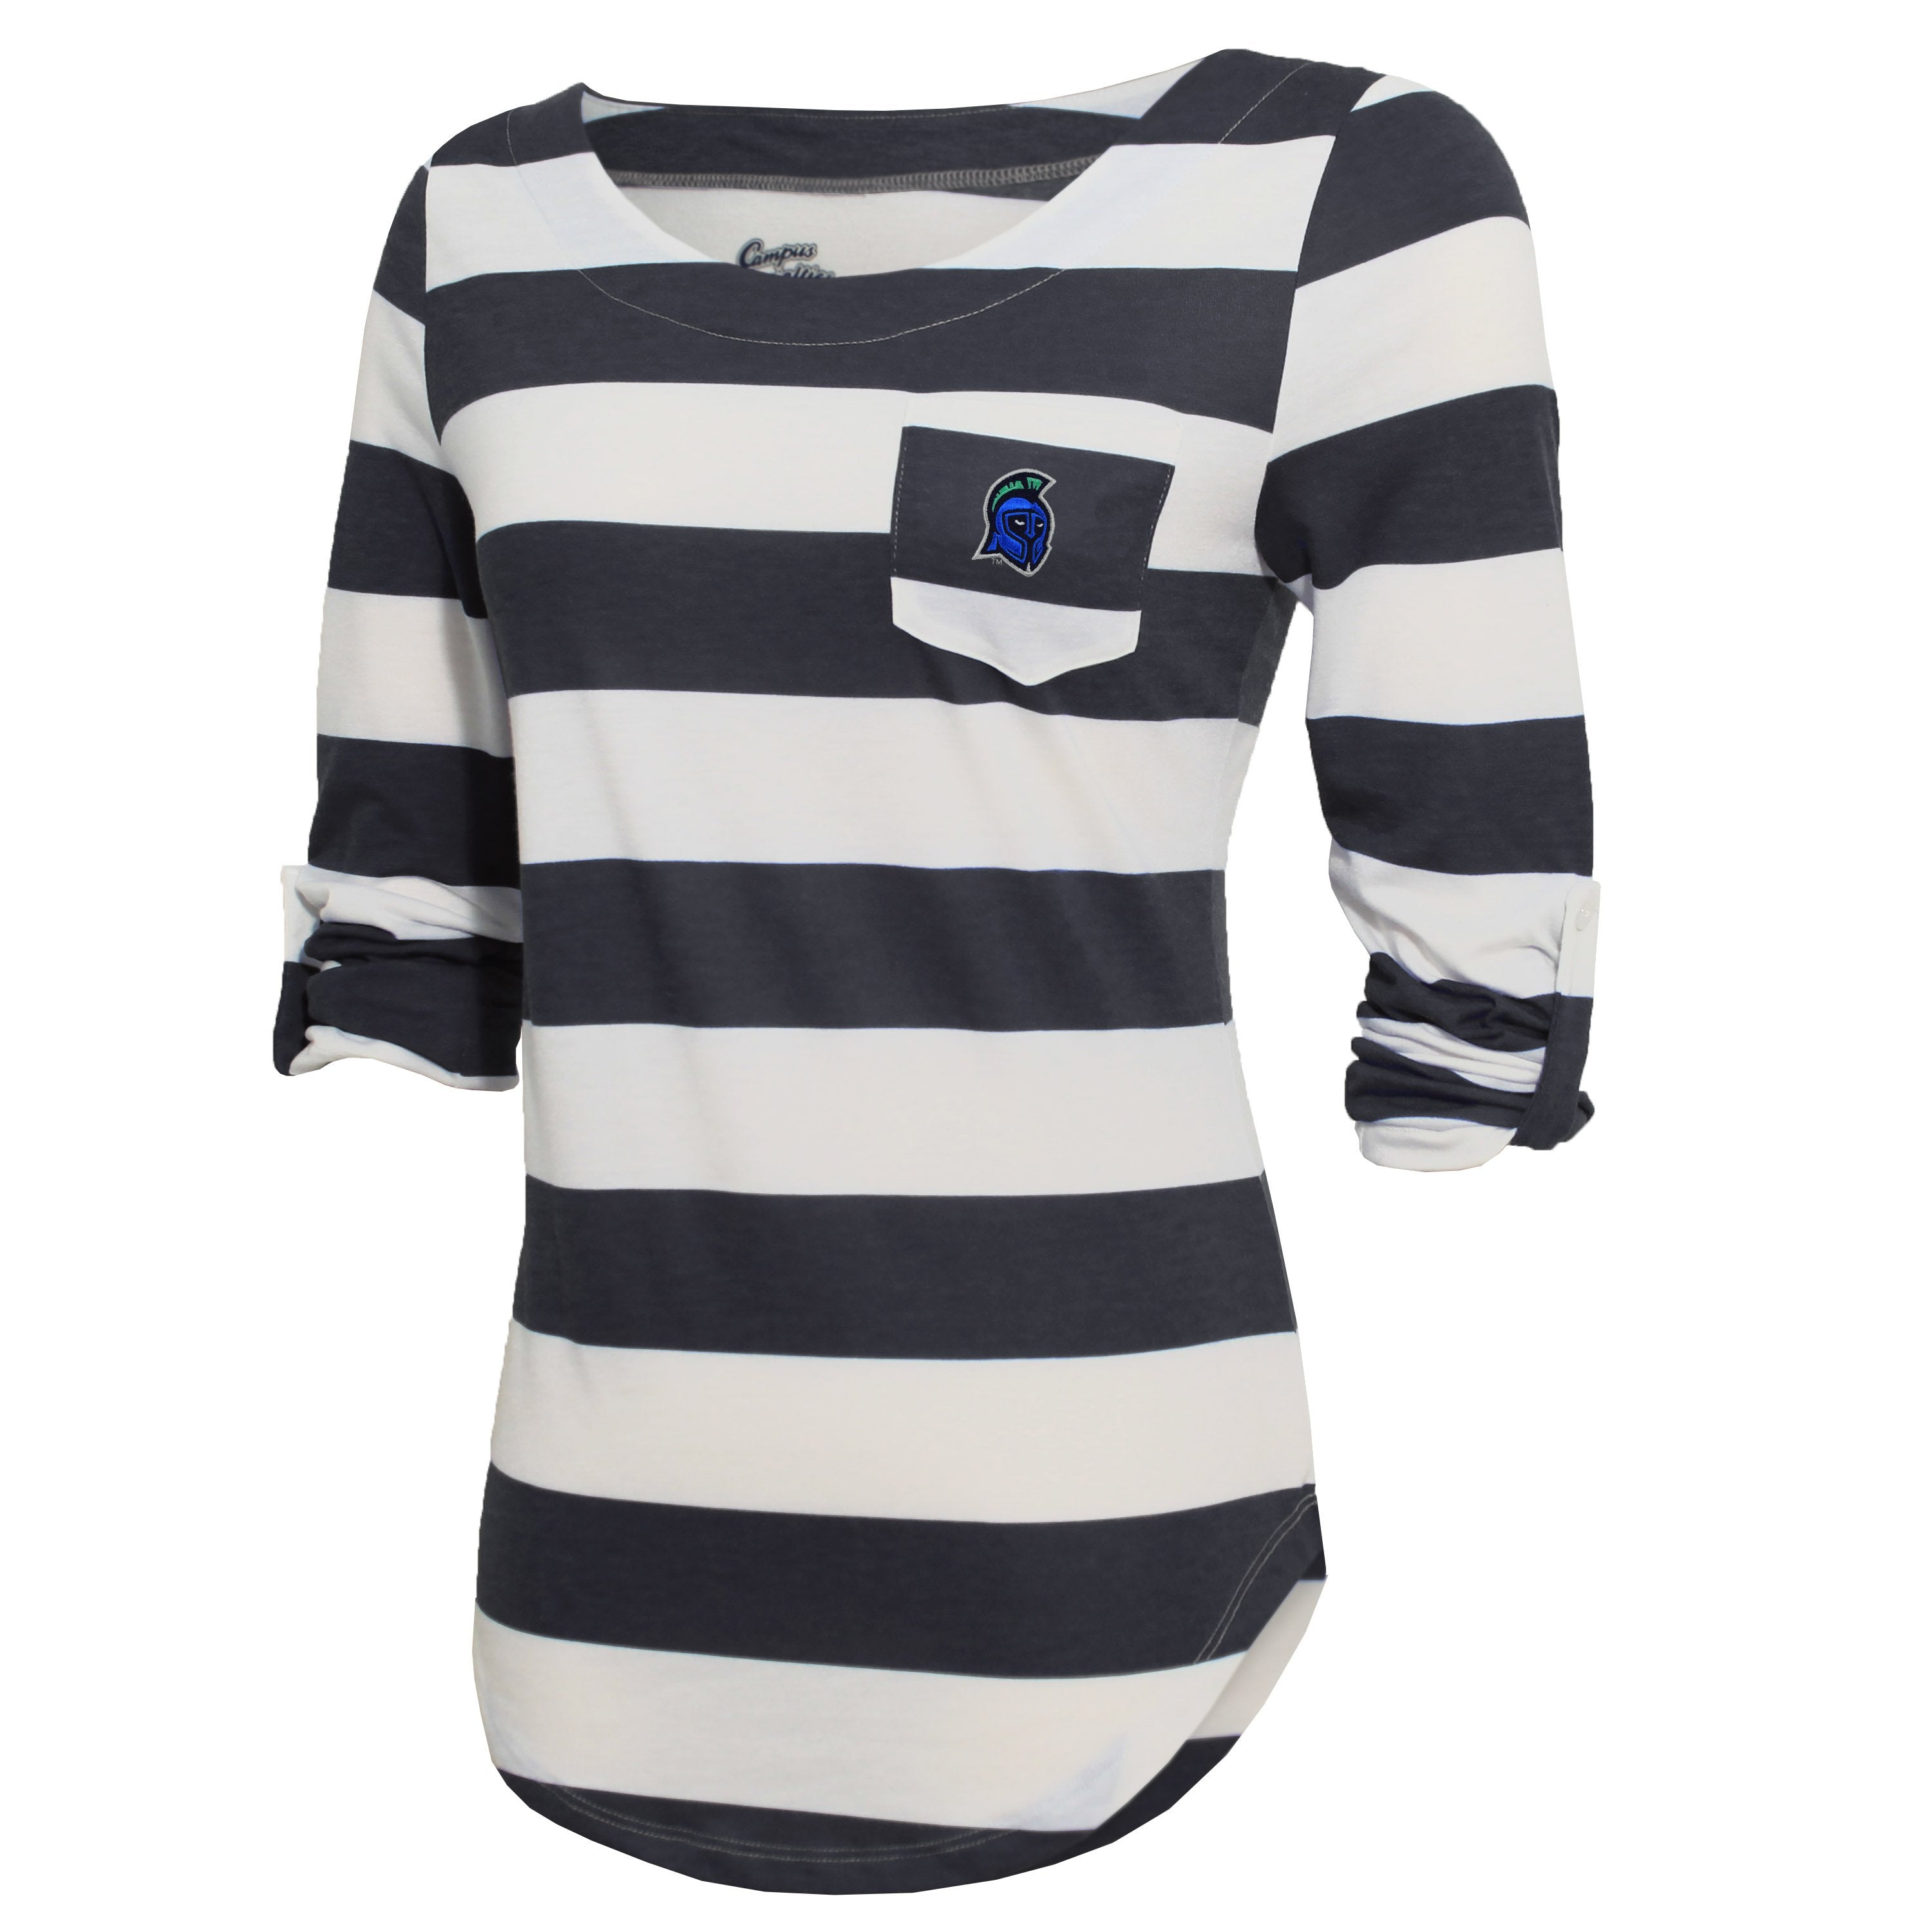 Campus Specialties West Florida Women's Gray Striped Pocket Top